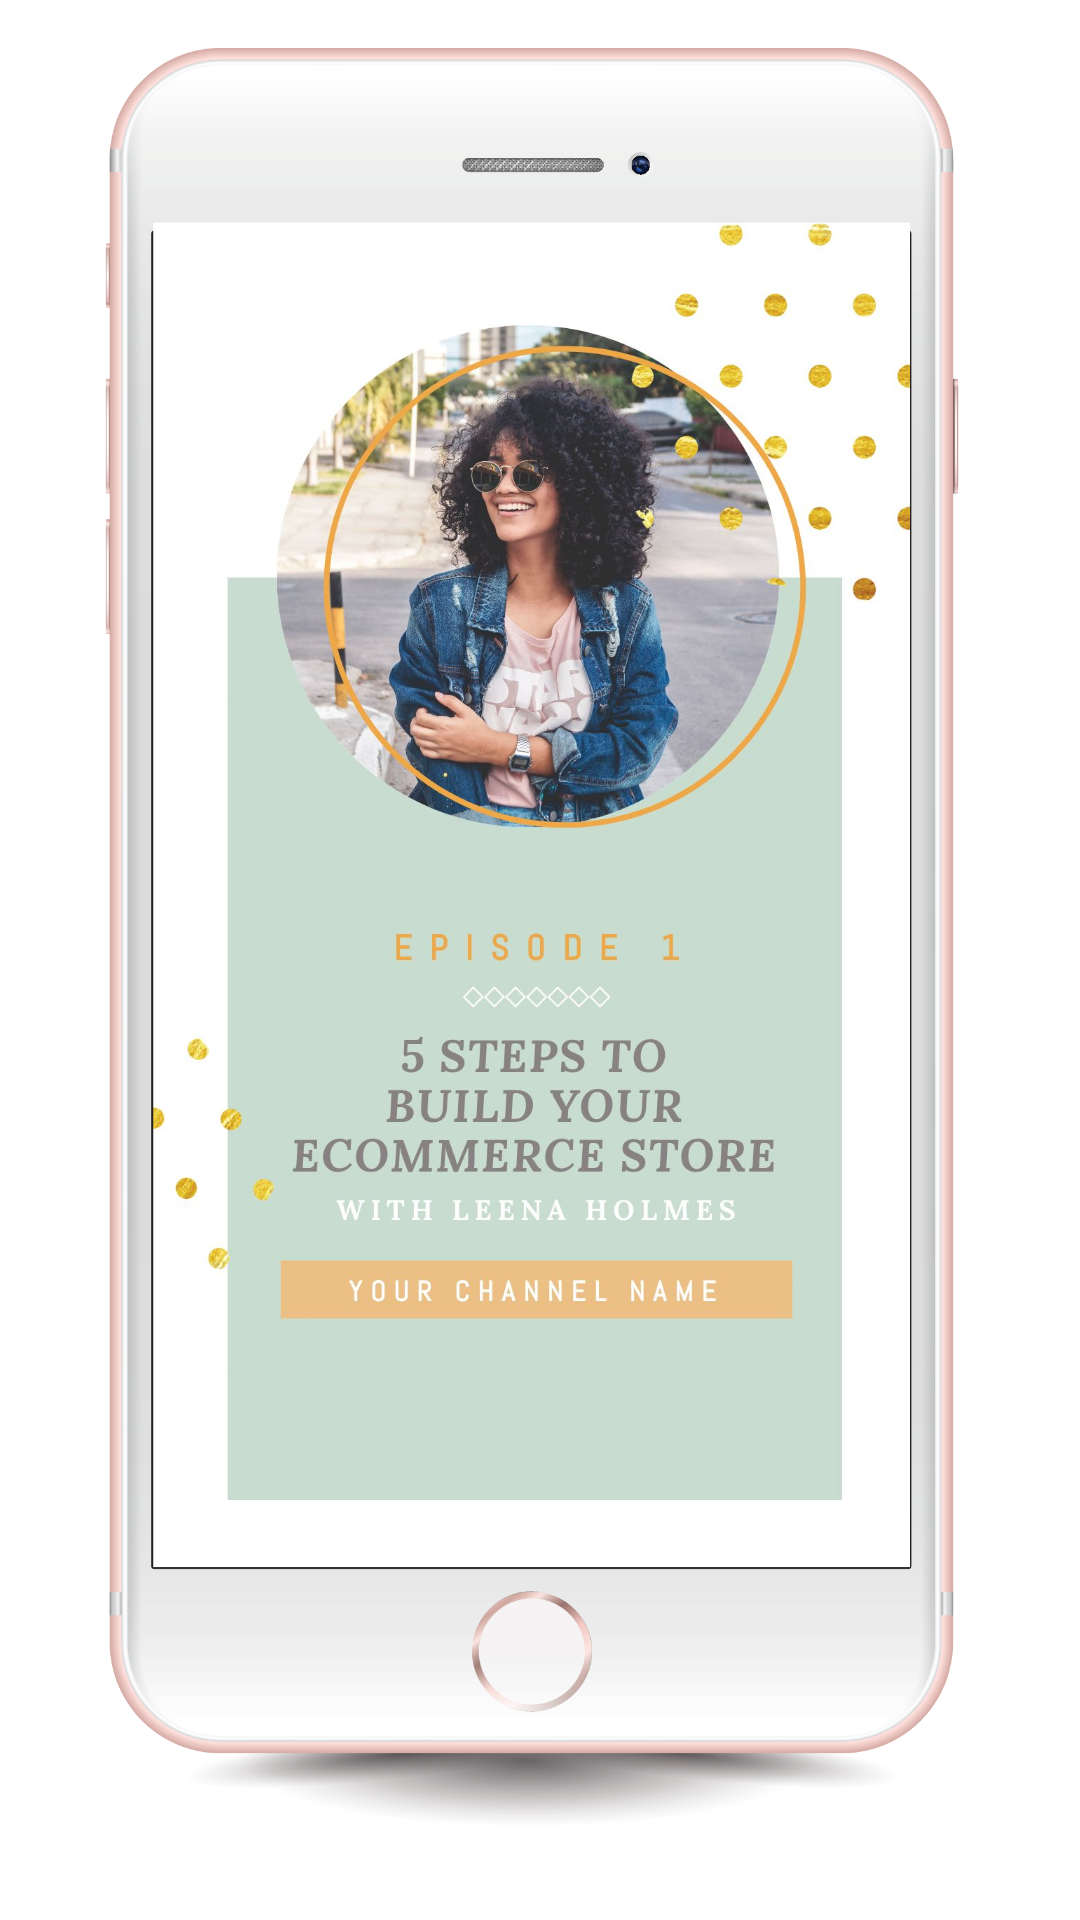 E-commerce Store IGTV Cover Template - 17 Stunning IGTV Templates for your Instagram TV Channel